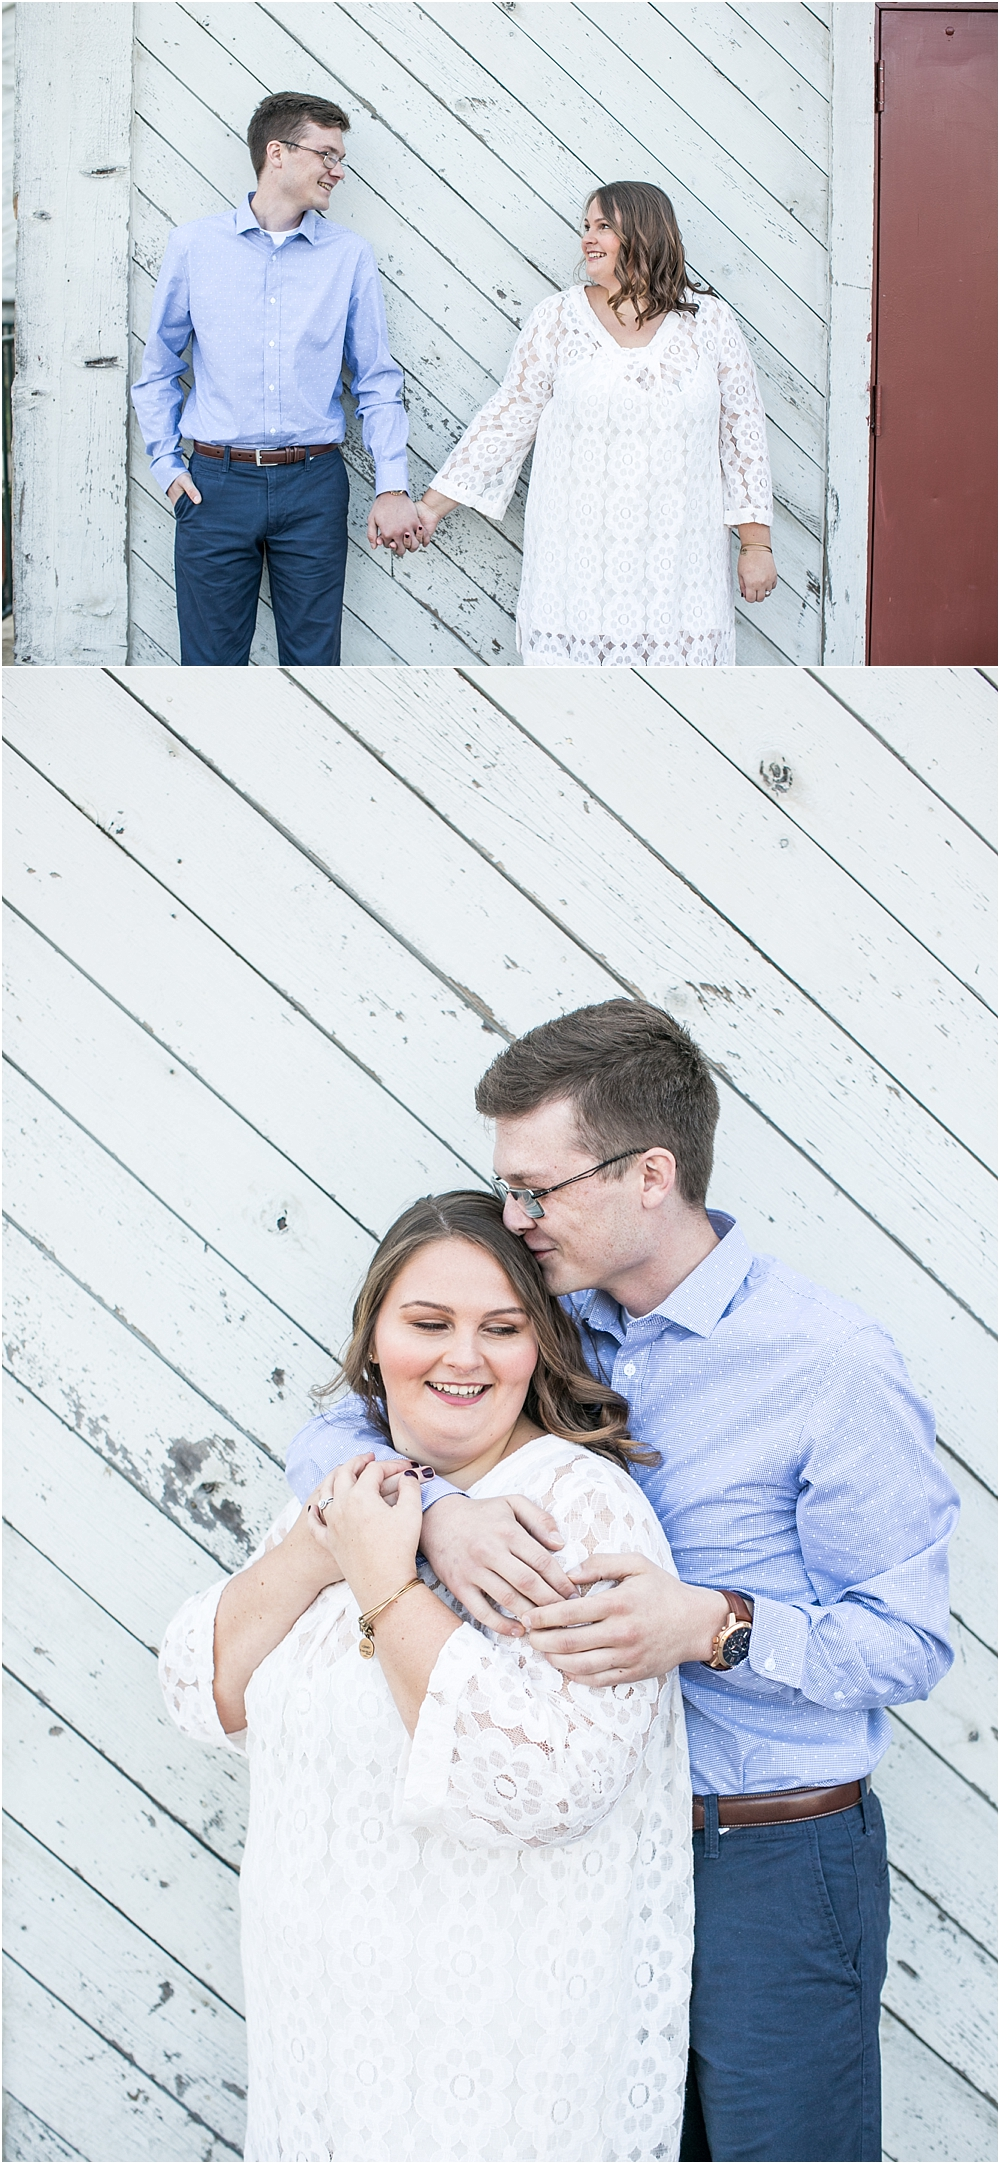 amanda rob centennial park engagement session living radiant photography photos_0002.jpg